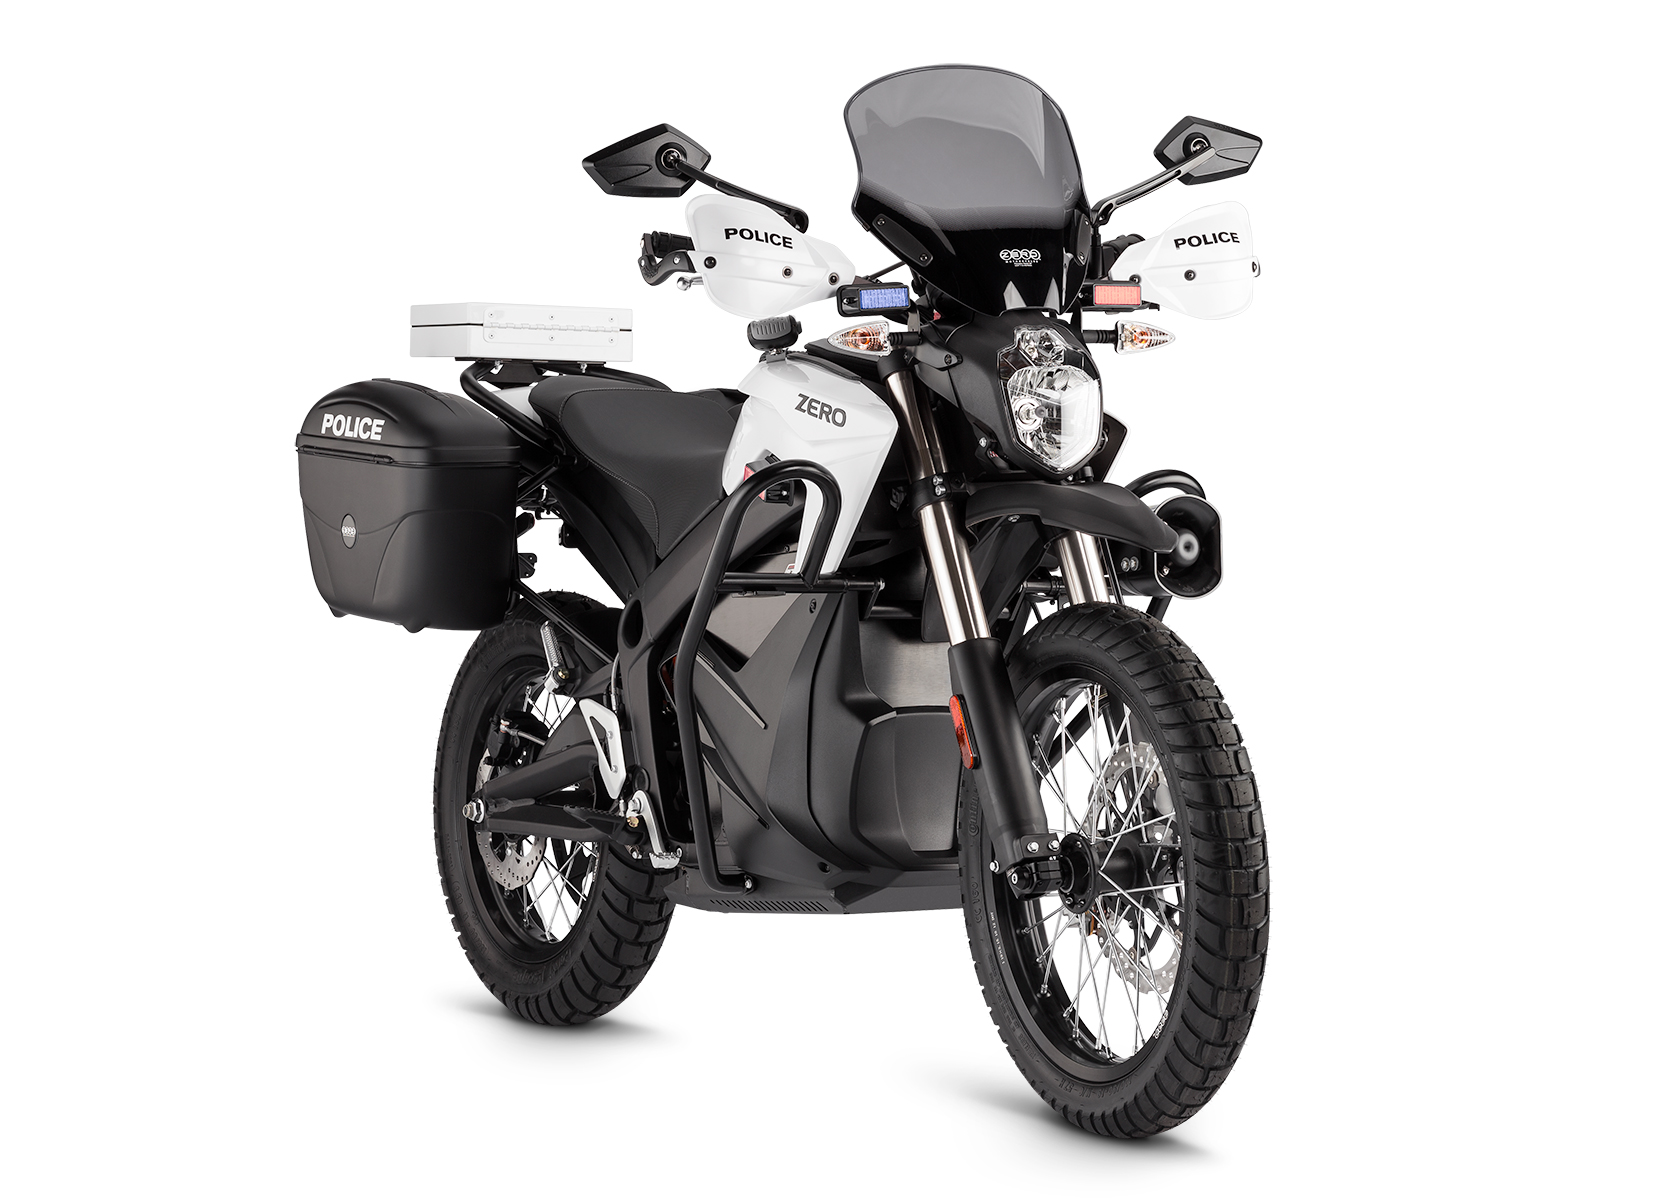 2014 Zero DSP Electric Motorcycle: Right angle, White Background